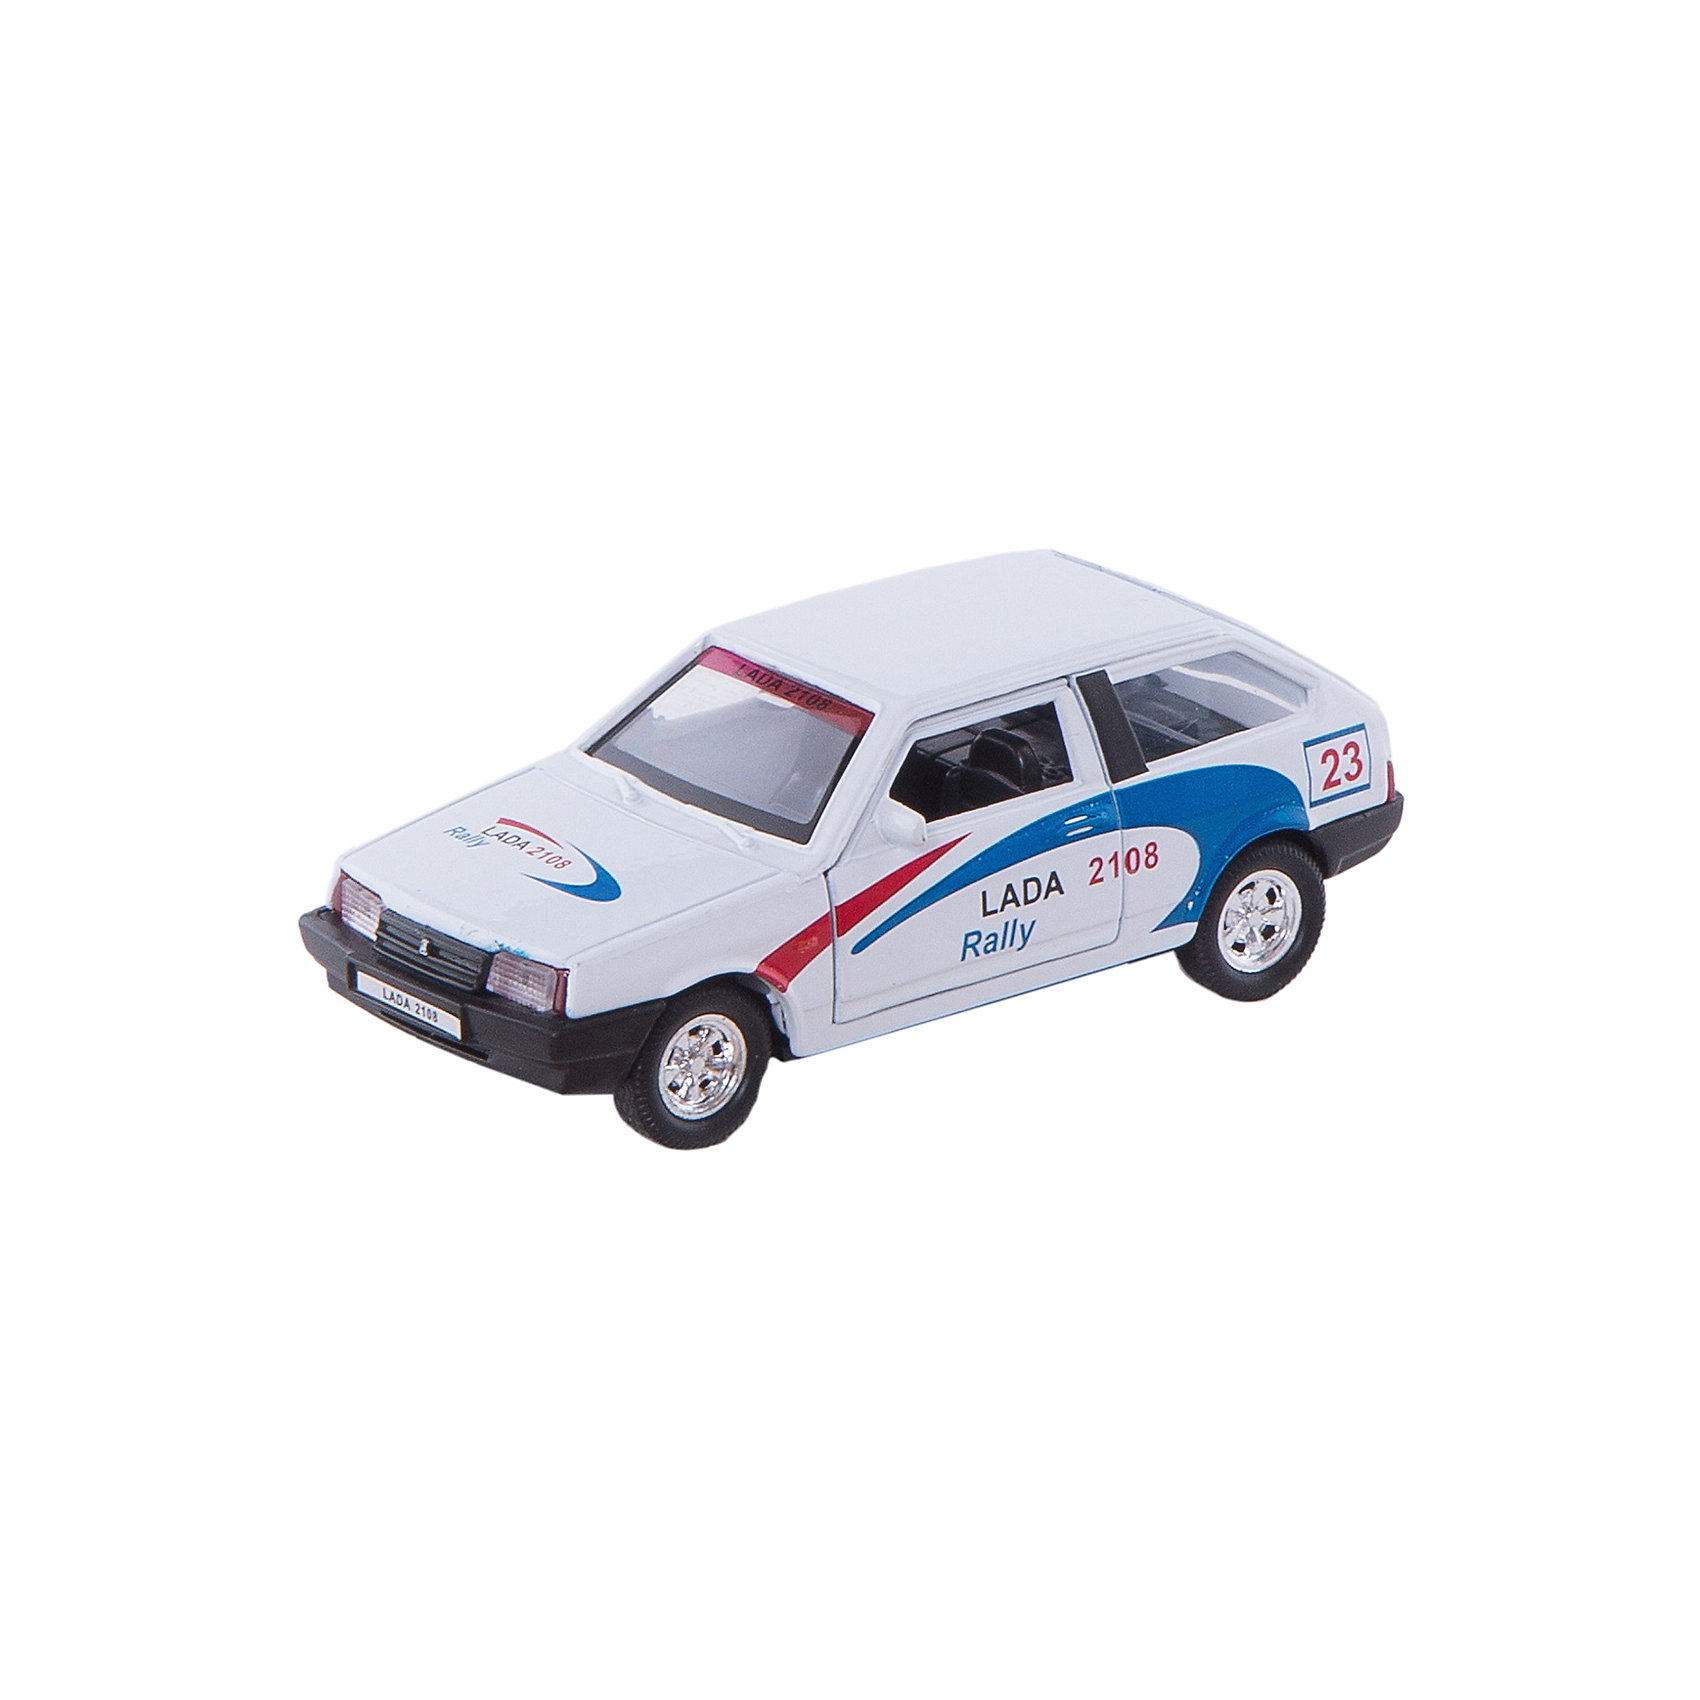 Welly Welly Модель машины 1:34-39 LADA 2108 Rally автомобиль welly nissan gtr 1 34 39 белый 43632